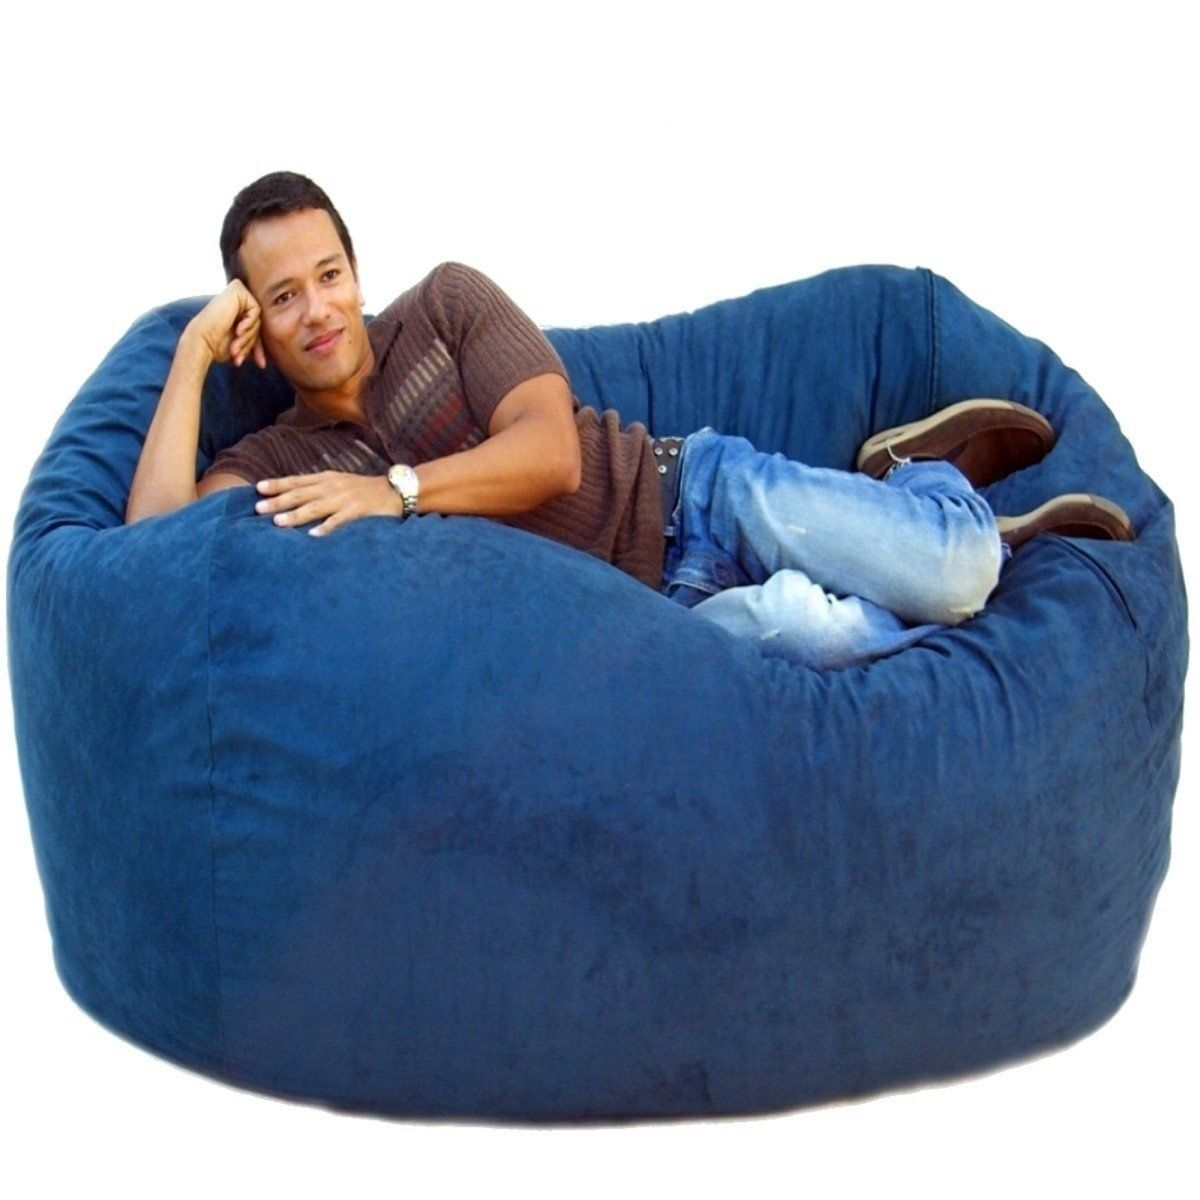 Bean bag chairs for adults - Blue Big Bean Bag Chairs